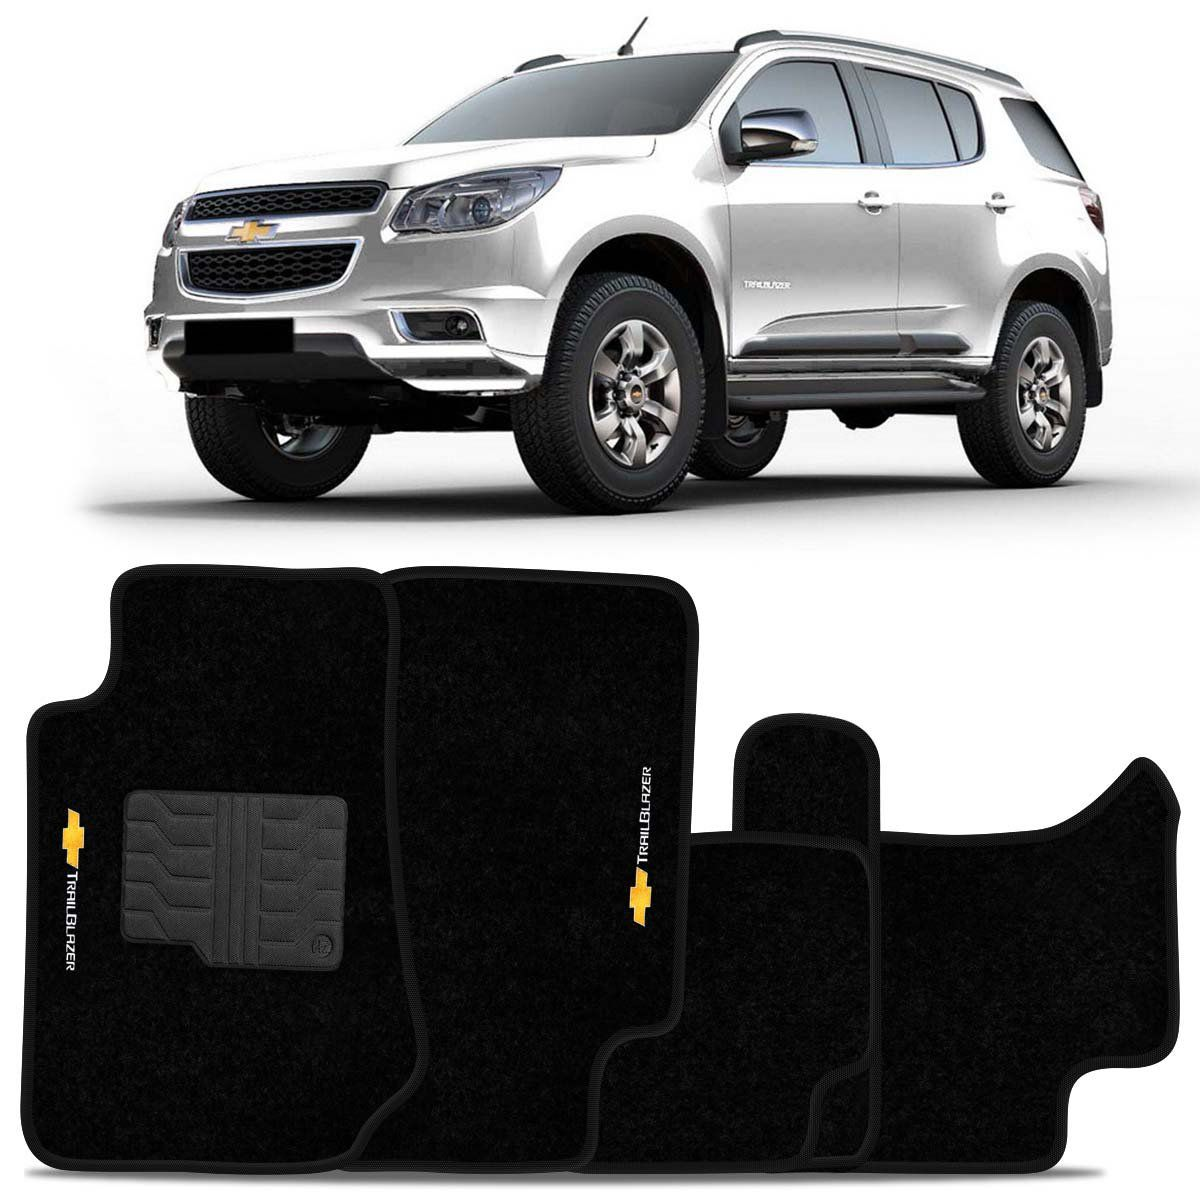 Tapete Carpete Trail Blazer 2013 2014 2015 2016 Preto